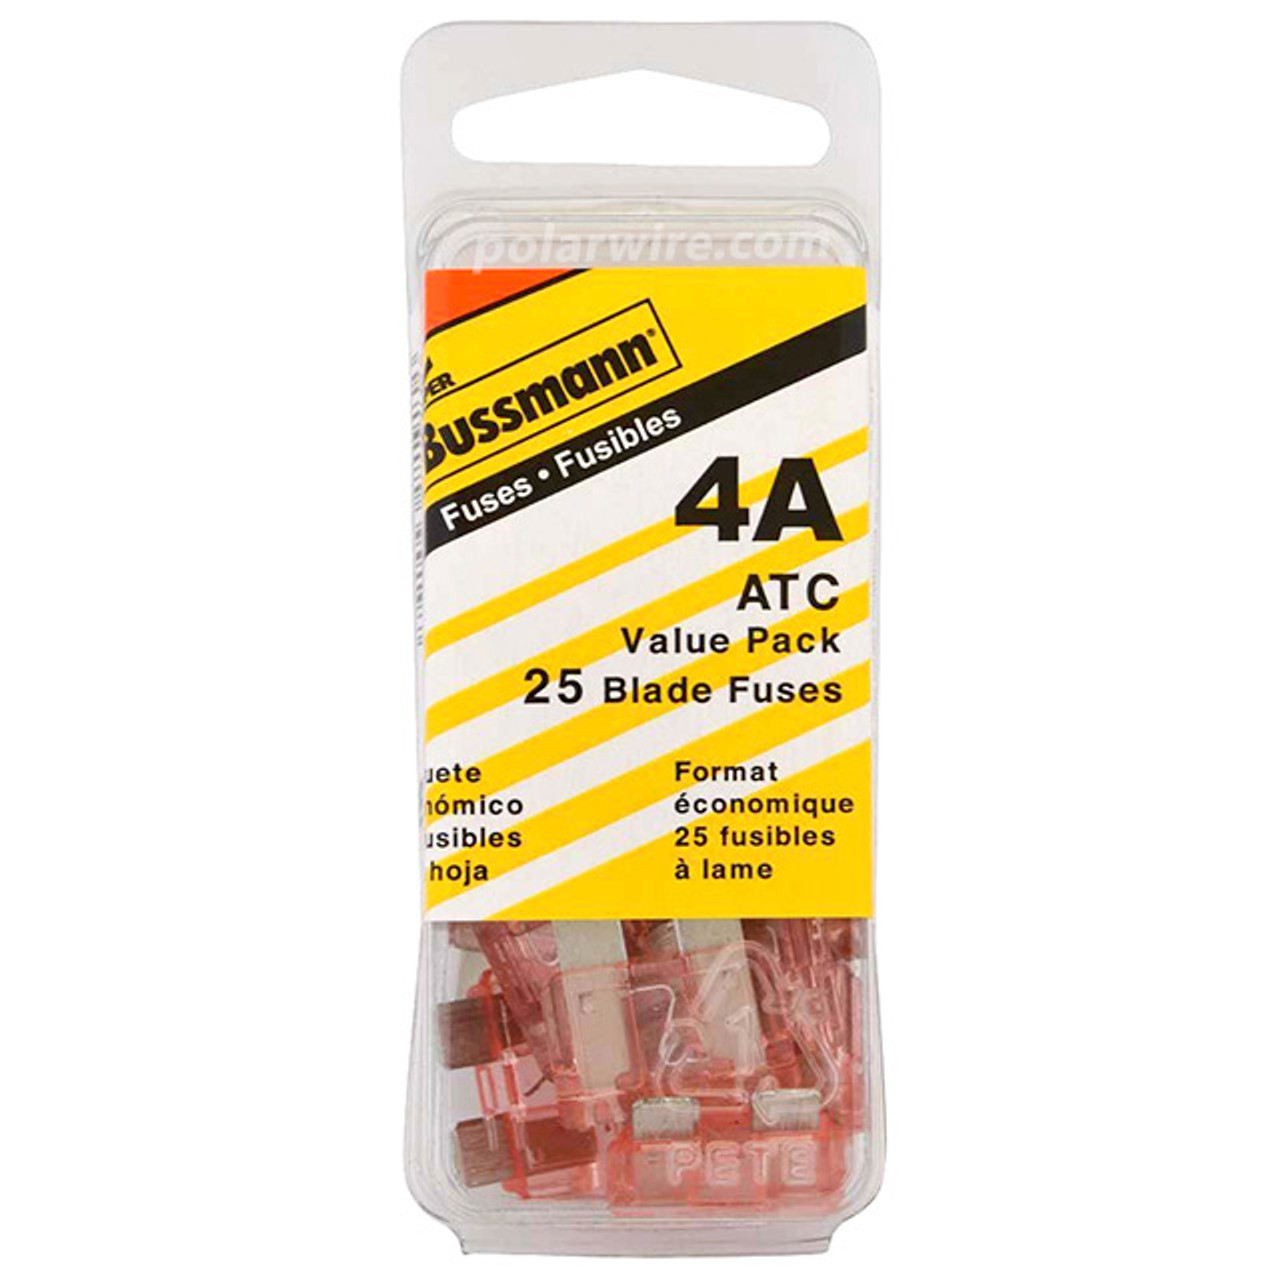 ATC BLADE FUSE 4AMP 25PC  VALUE PACK